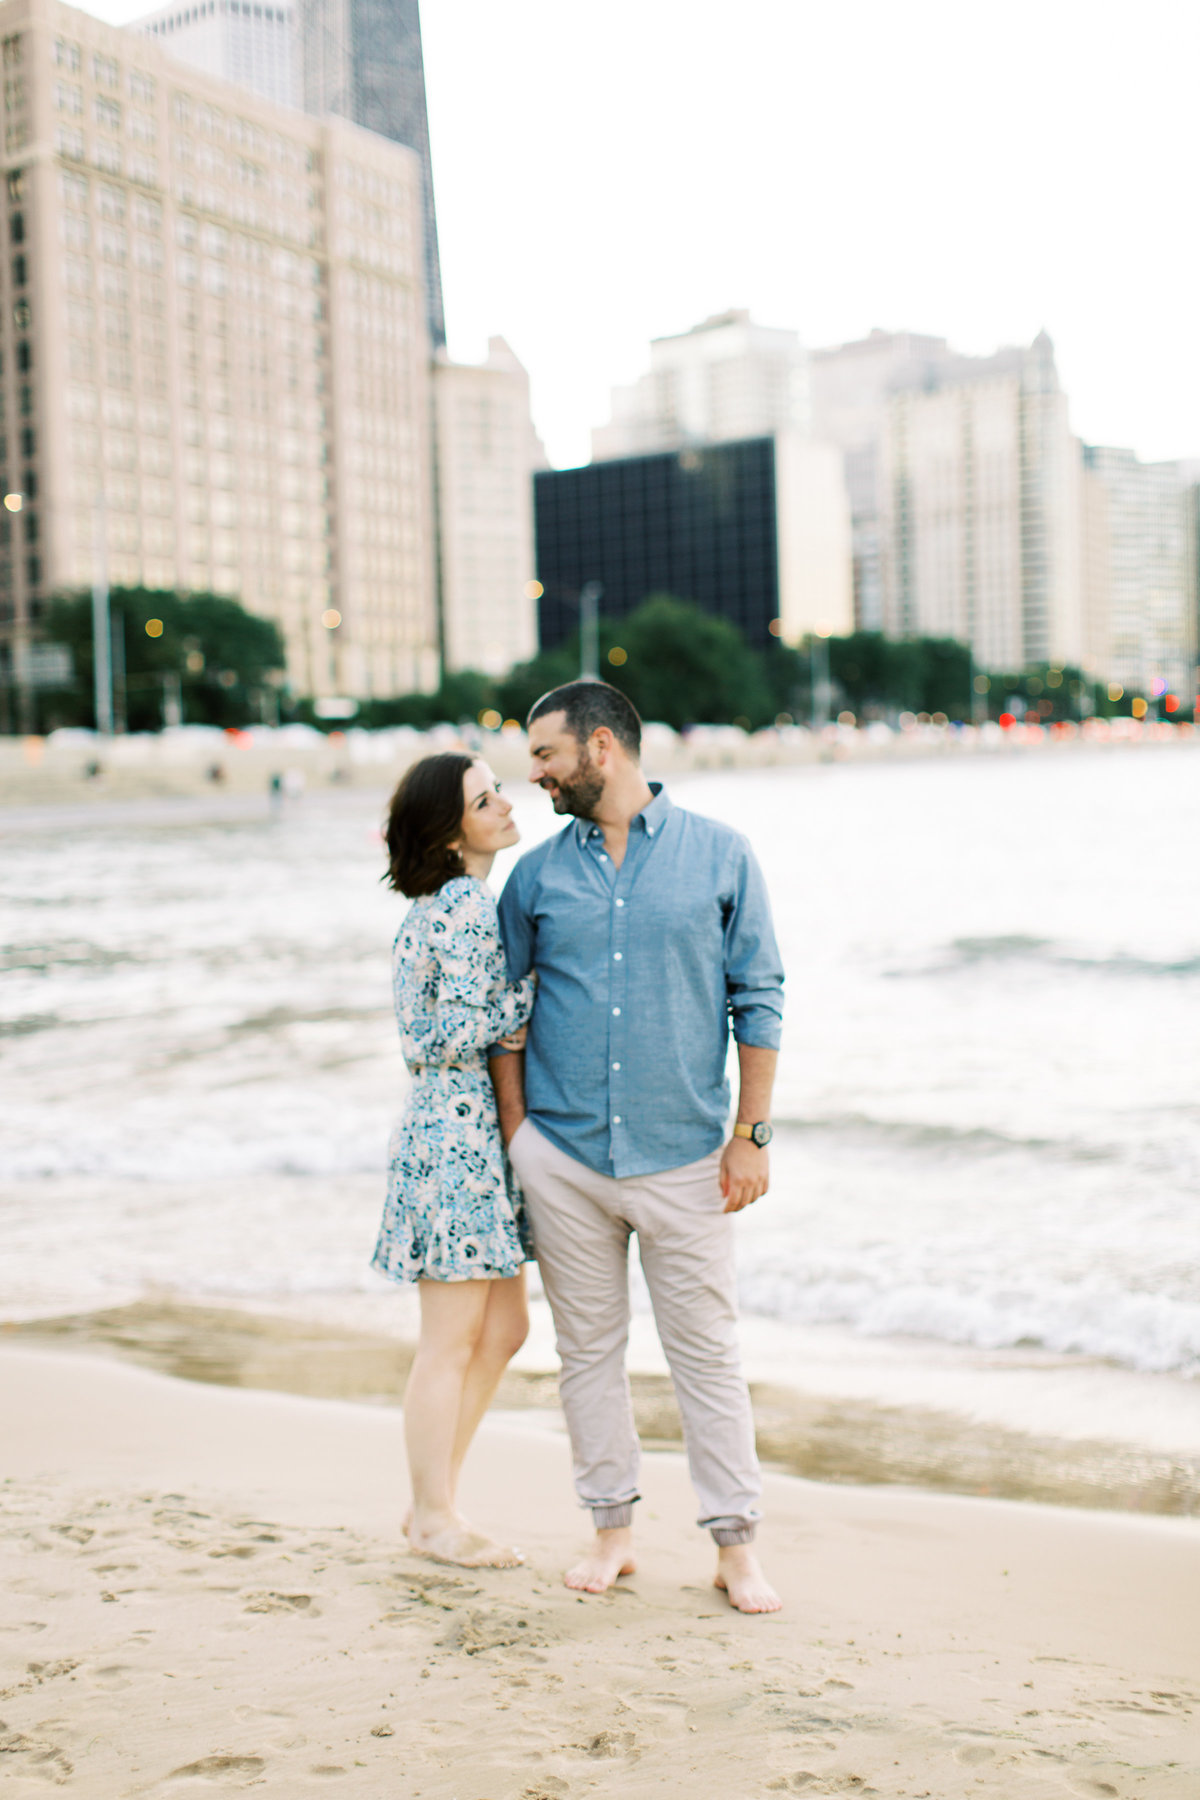 AllieDavid_Engagement_September042019_123